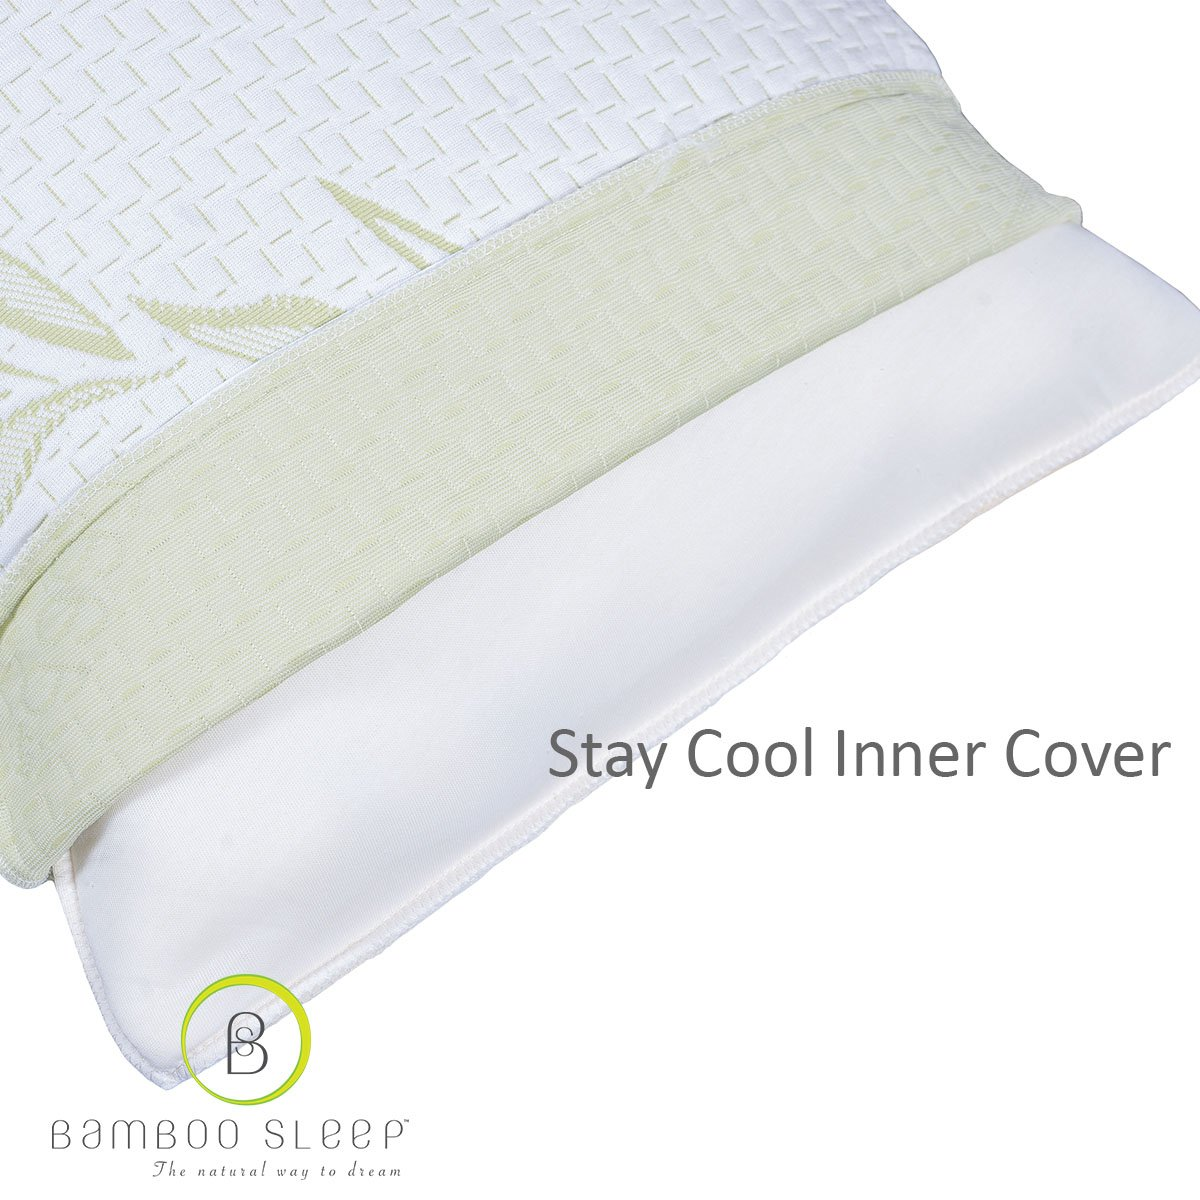 cool sweats photo stays ideas cooling size best night pillows reviews that stay medium on case of pillow for sit unique